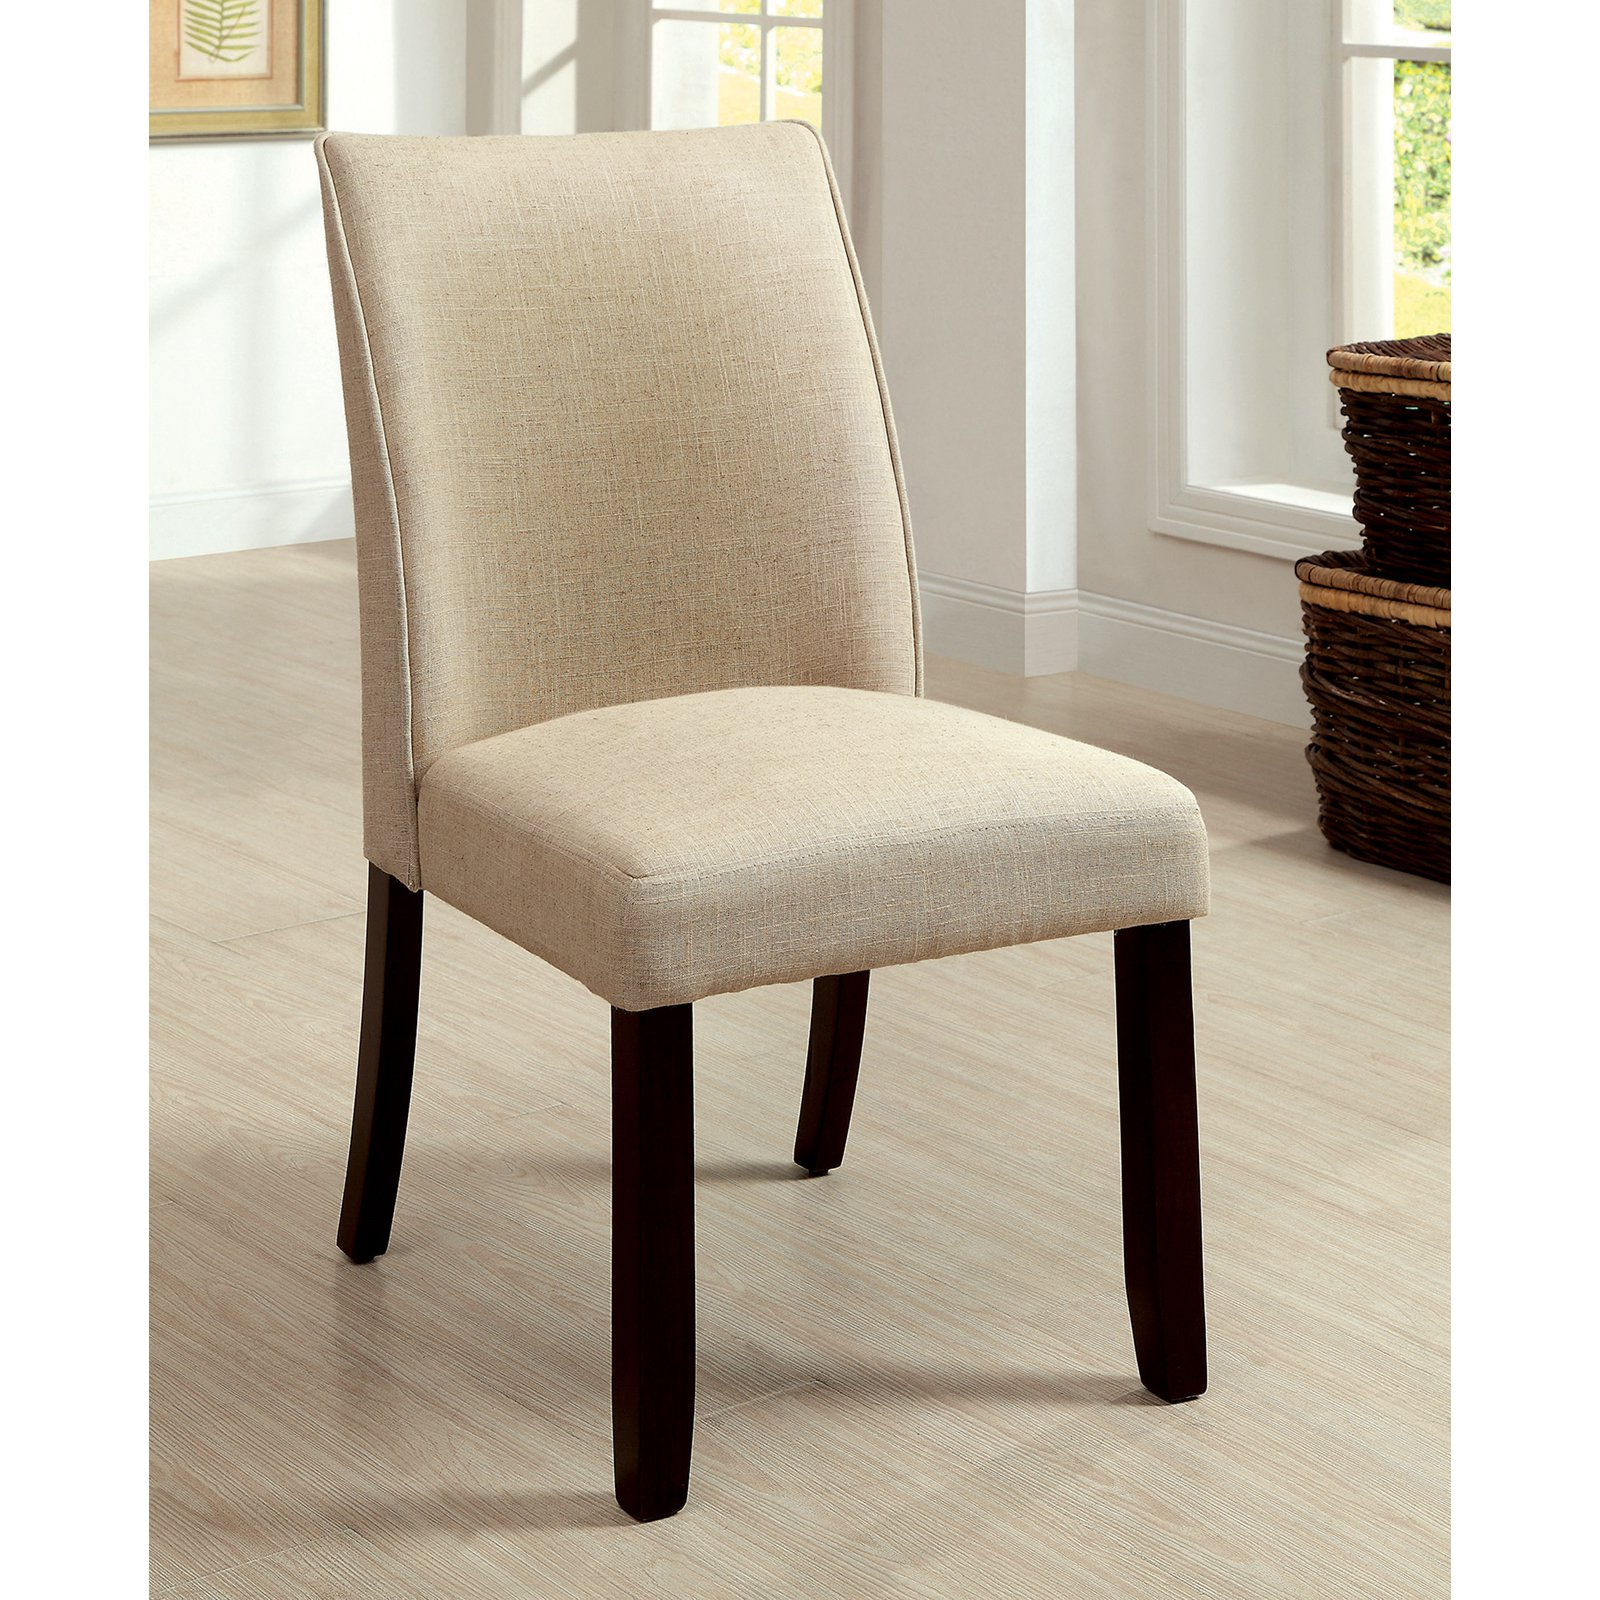 Furniture of America Vessice 2-Piece Parsons Dining Side Chairs - Espresso